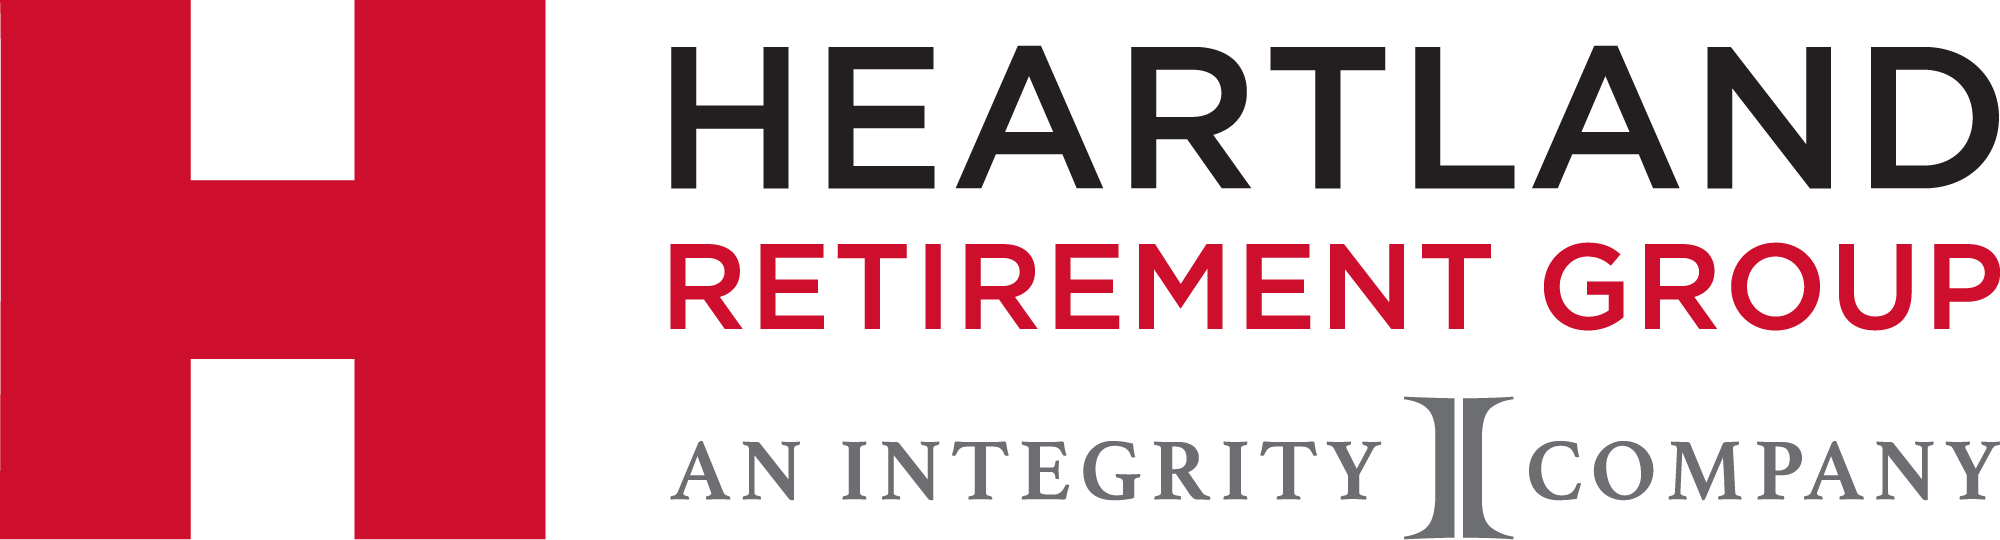 heartland-retirement-group